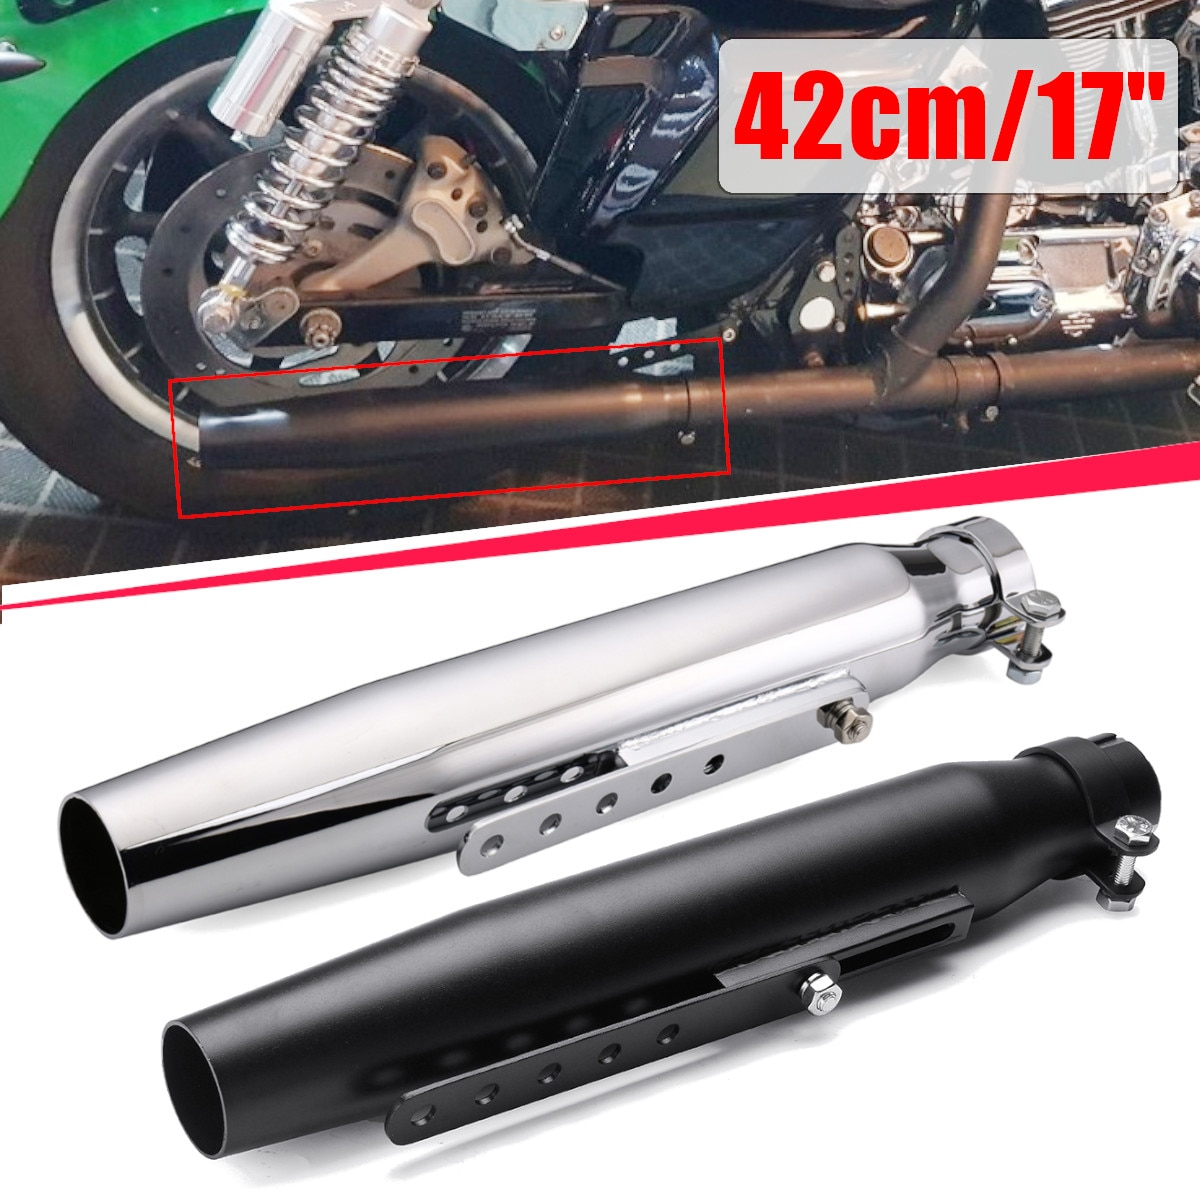 Universal 17'' Motorcycle Exhaust Muffler Pipe Tip Retro Vintage Rear Pipe Tube Exhause Silencer For Harley Bobbers Cafe Racer